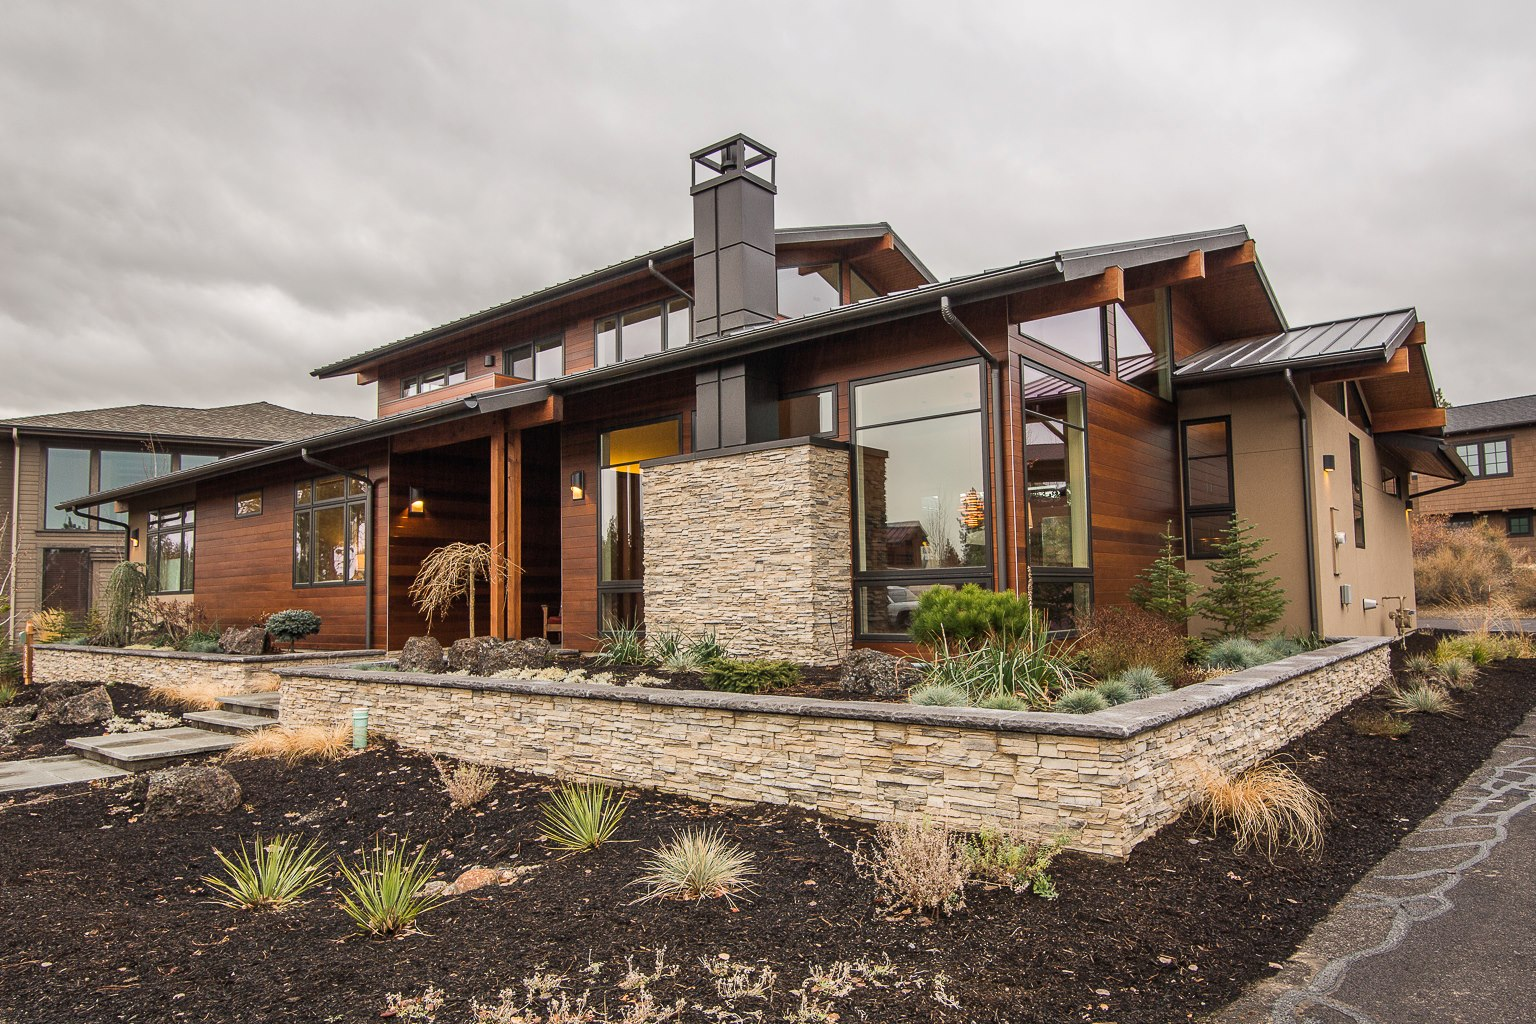 The photos of this home were featured in LUXE magazine.